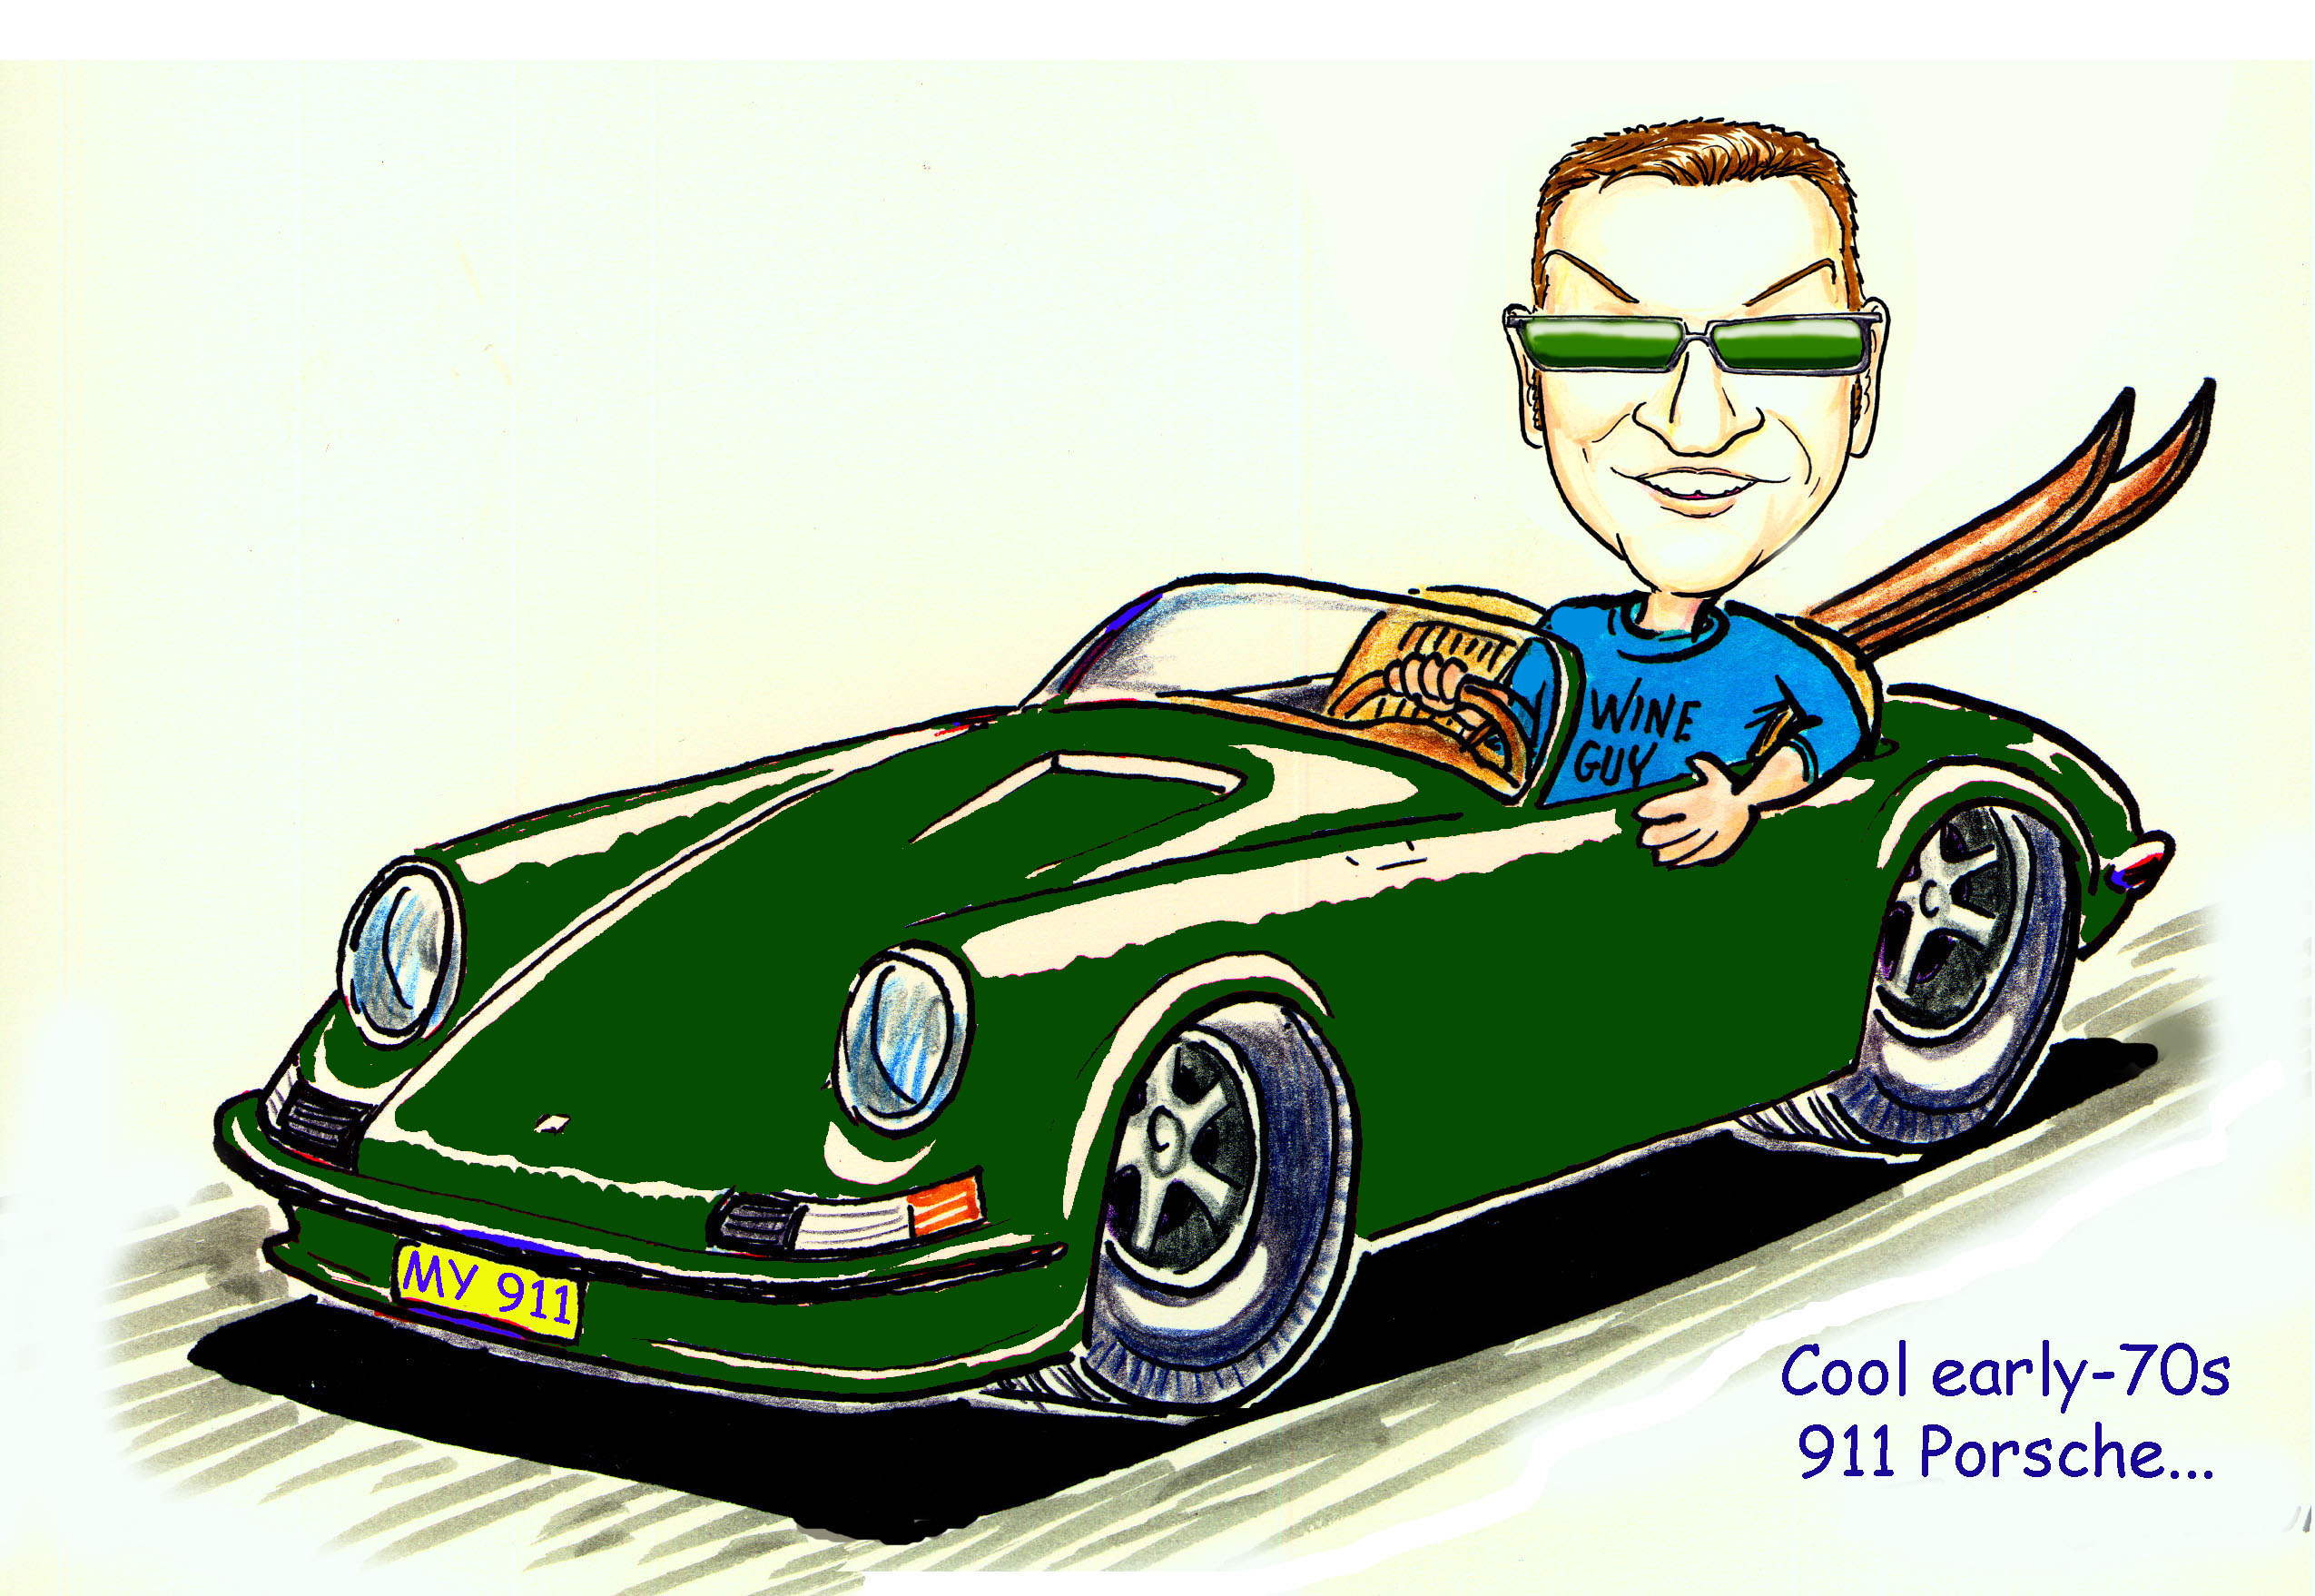 Drawn vehicle caricature Cartoons Car caricatures motorcycles of